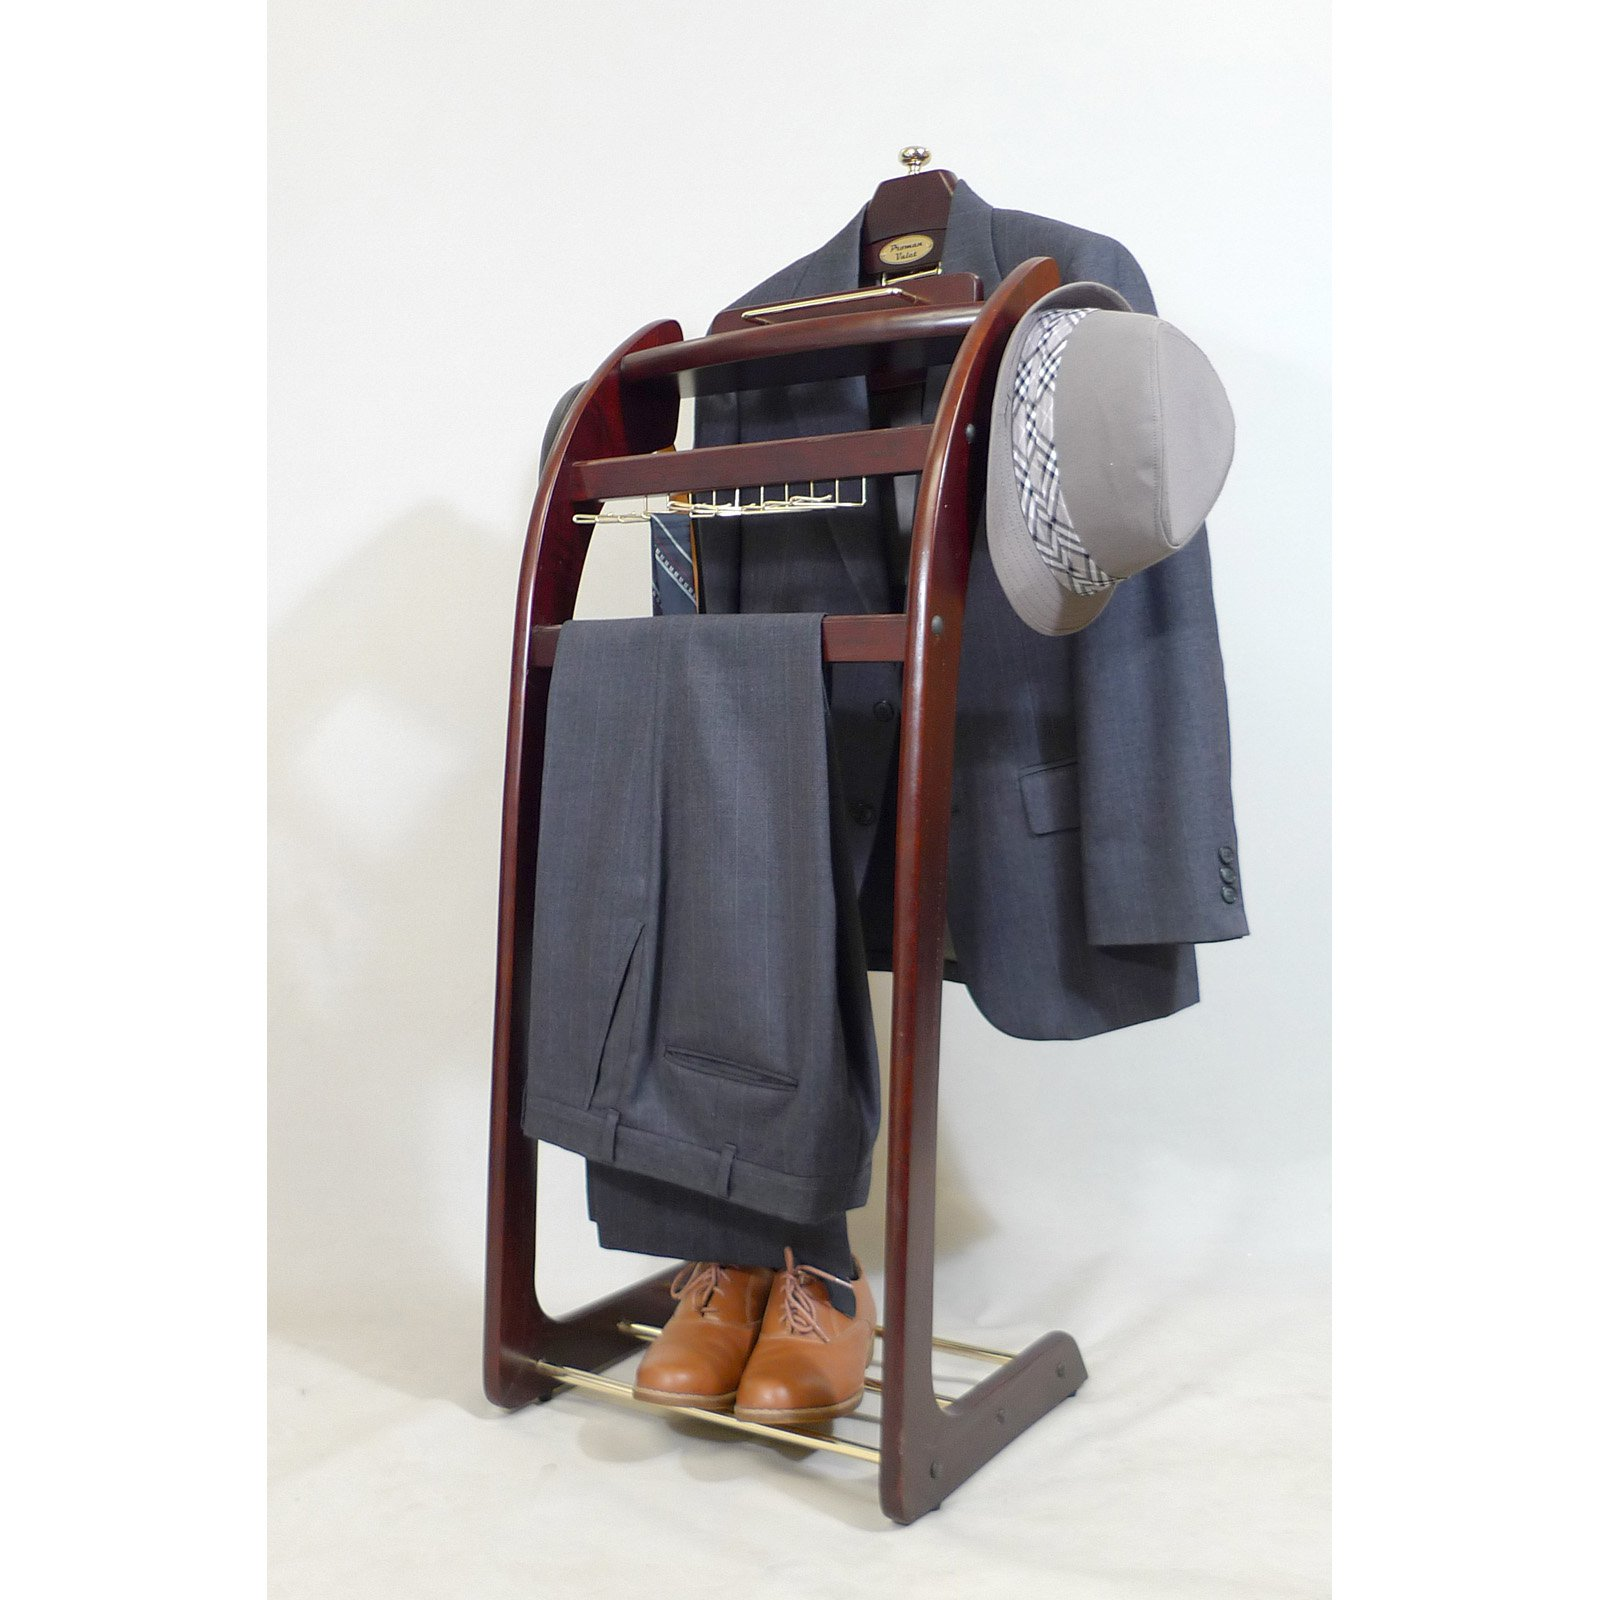 VL16158 Windsor Signature Valet Dark Mahogany with Brass Hardware, built in tie rack, detachable hanger for easy access